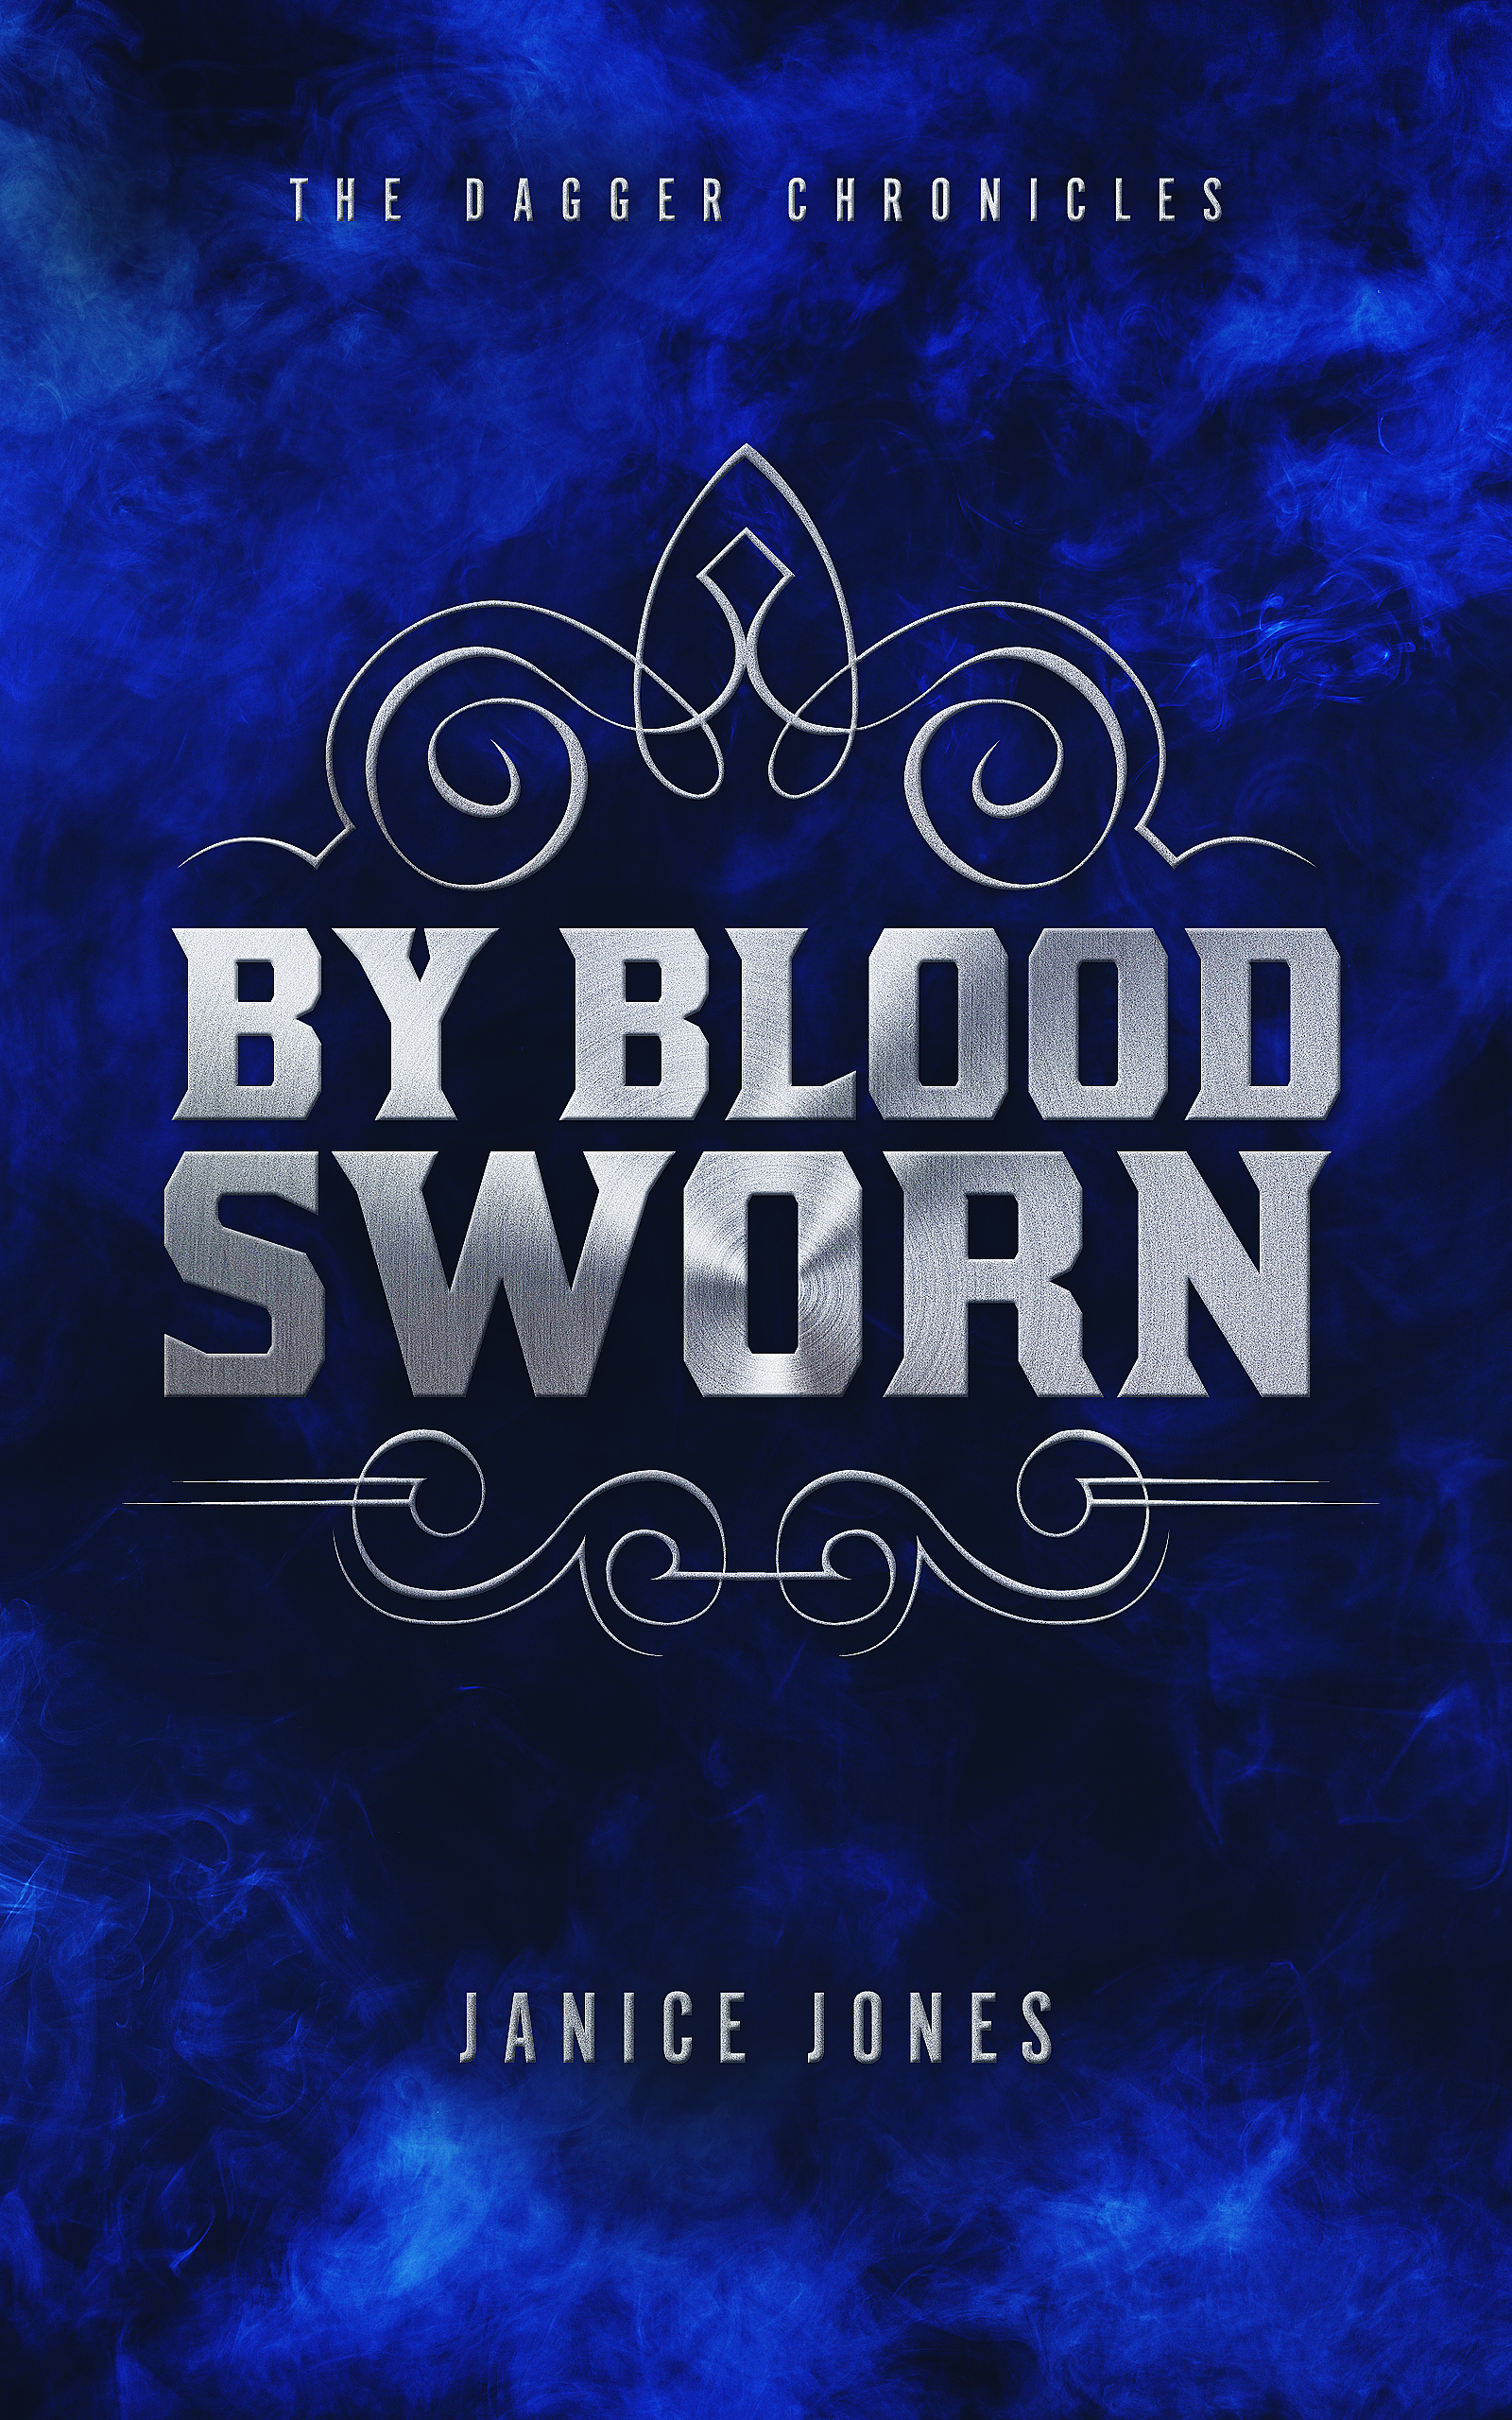 By Blood Sworn